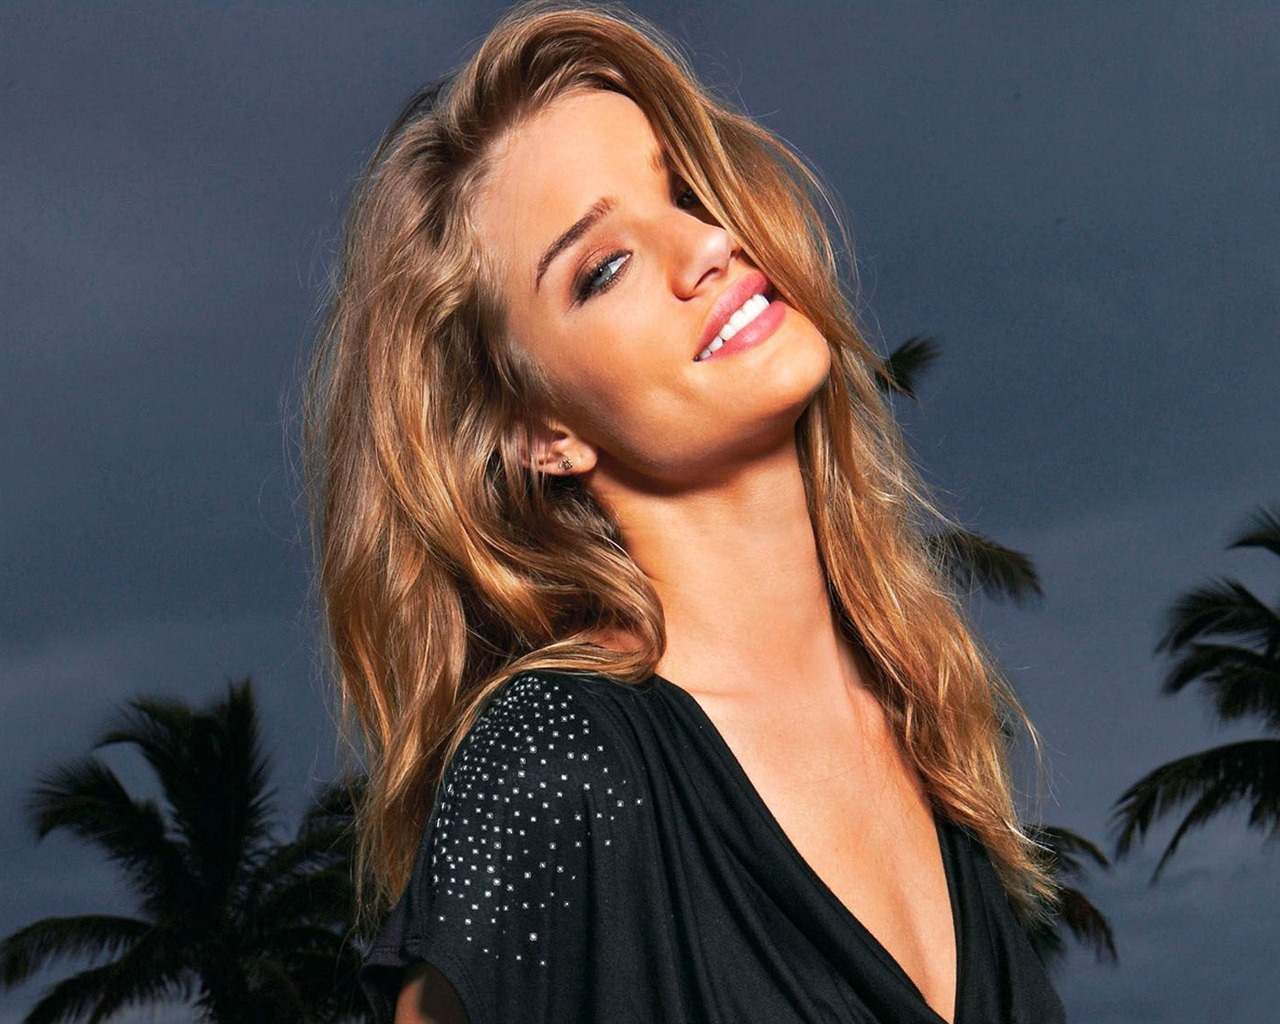 Rosie Huntington Whiteley #009 - 1280x1024 Wallpapers Pictures Photos Images